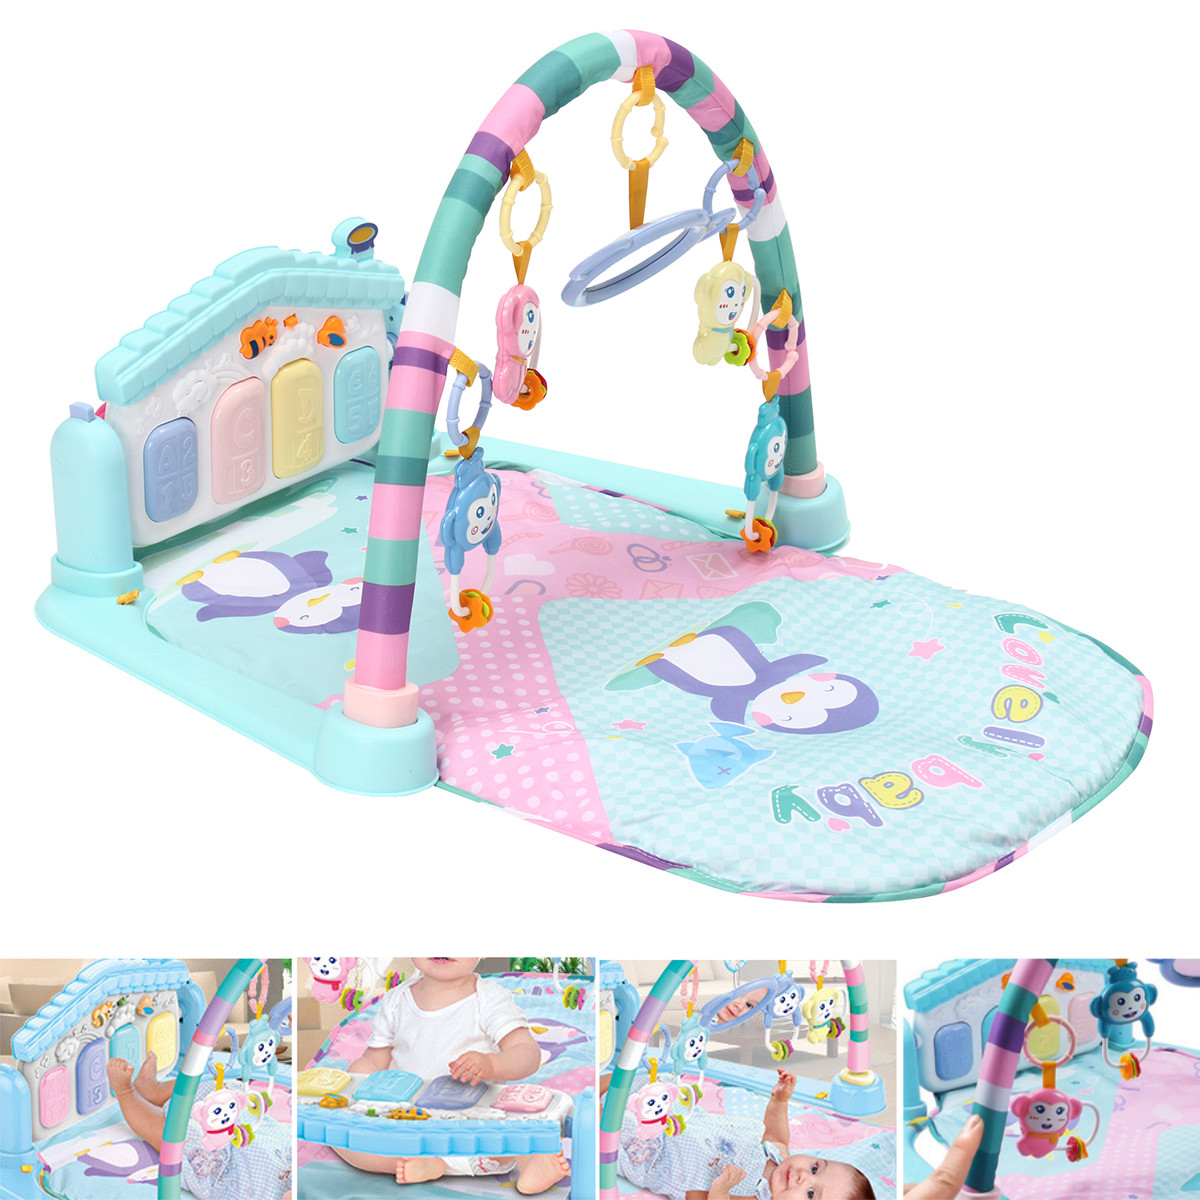 Meigar Baby Play Mat Gym, 3 in1 Newborn Infant Baby Musical Piano Play Mat Blanket Kids Activity Carpet Rug